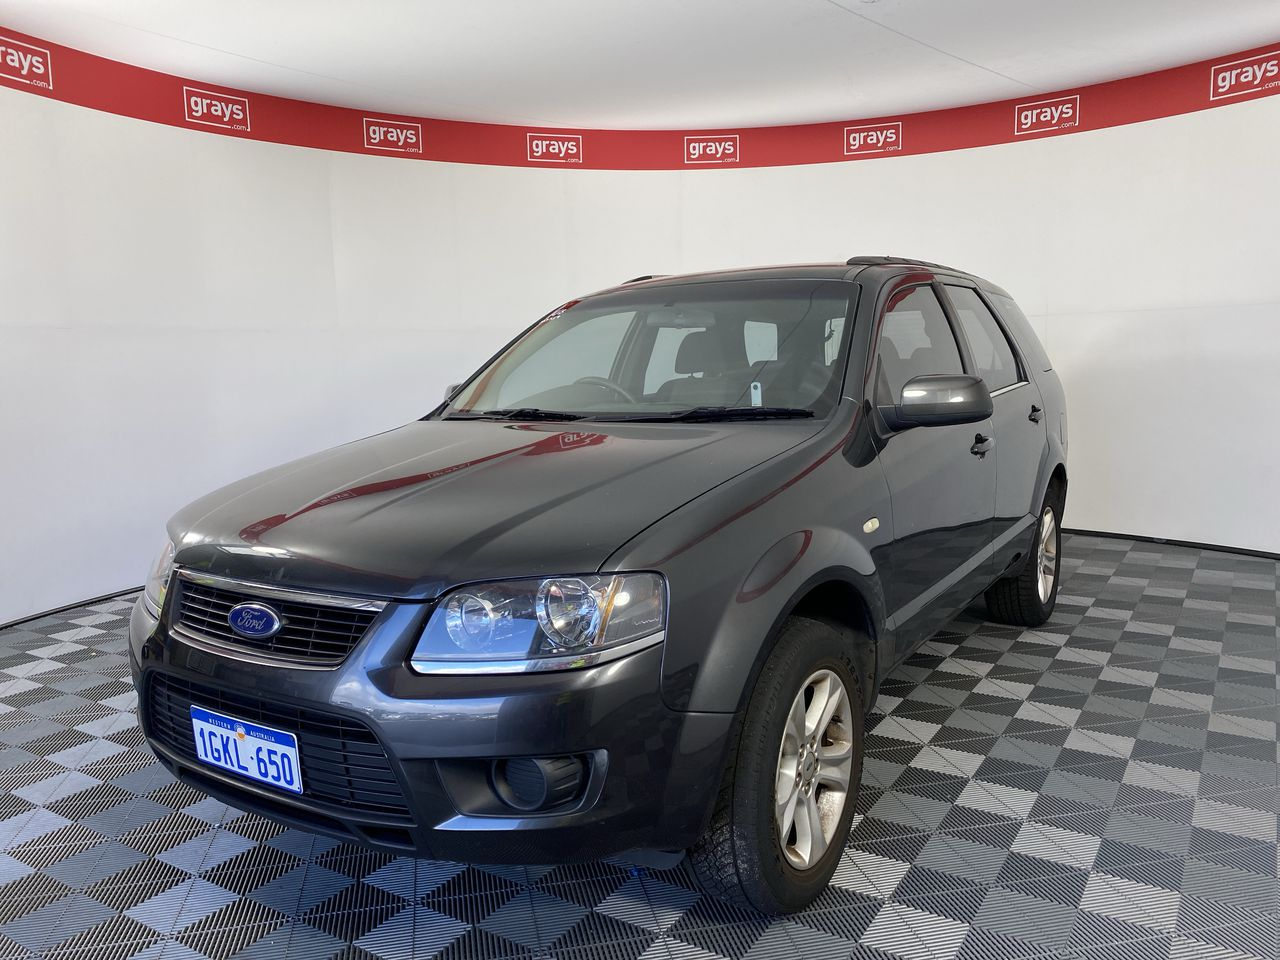 2009 Ford Territory TX SY II Automatic 7 Seats Wagon